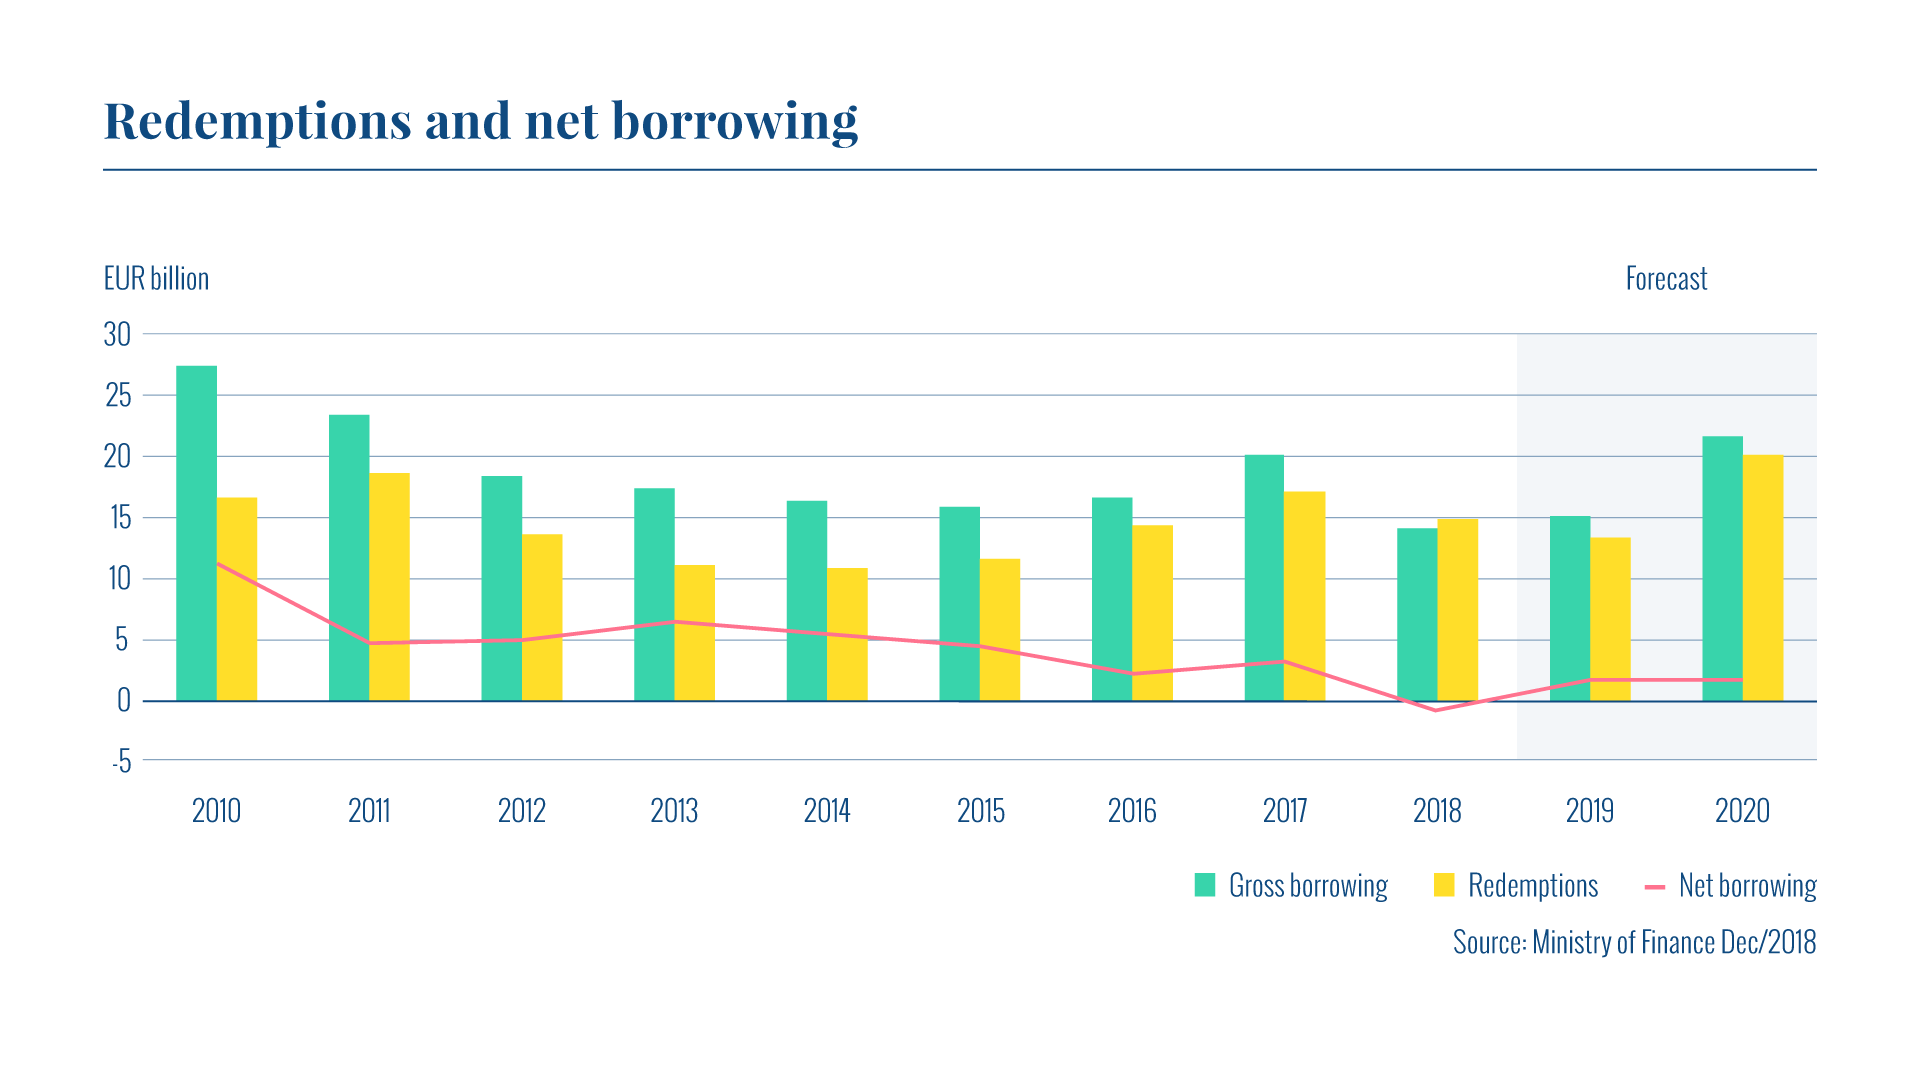 The graph shows annual gross borrowing, redemptions and net borrowing in 2010-20. Redemptions of EUR 15.0 billion took place in 2018 while net borrowing amounted to EUR -0.9 billion.